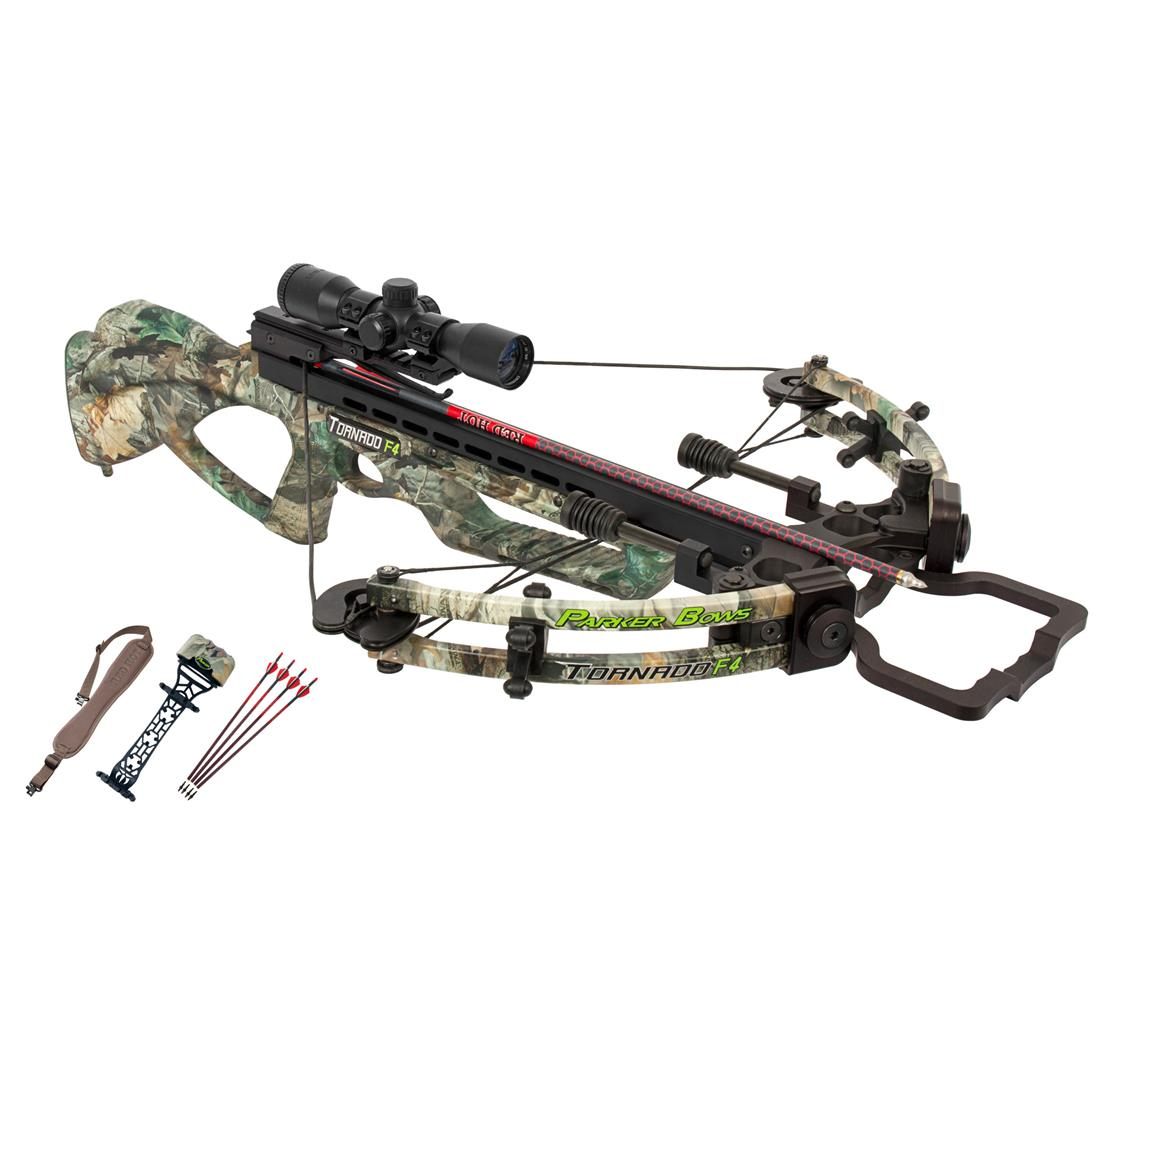 Parker Bows Tornado F4 Crossbow Package with 3X Multi-reticle Scope